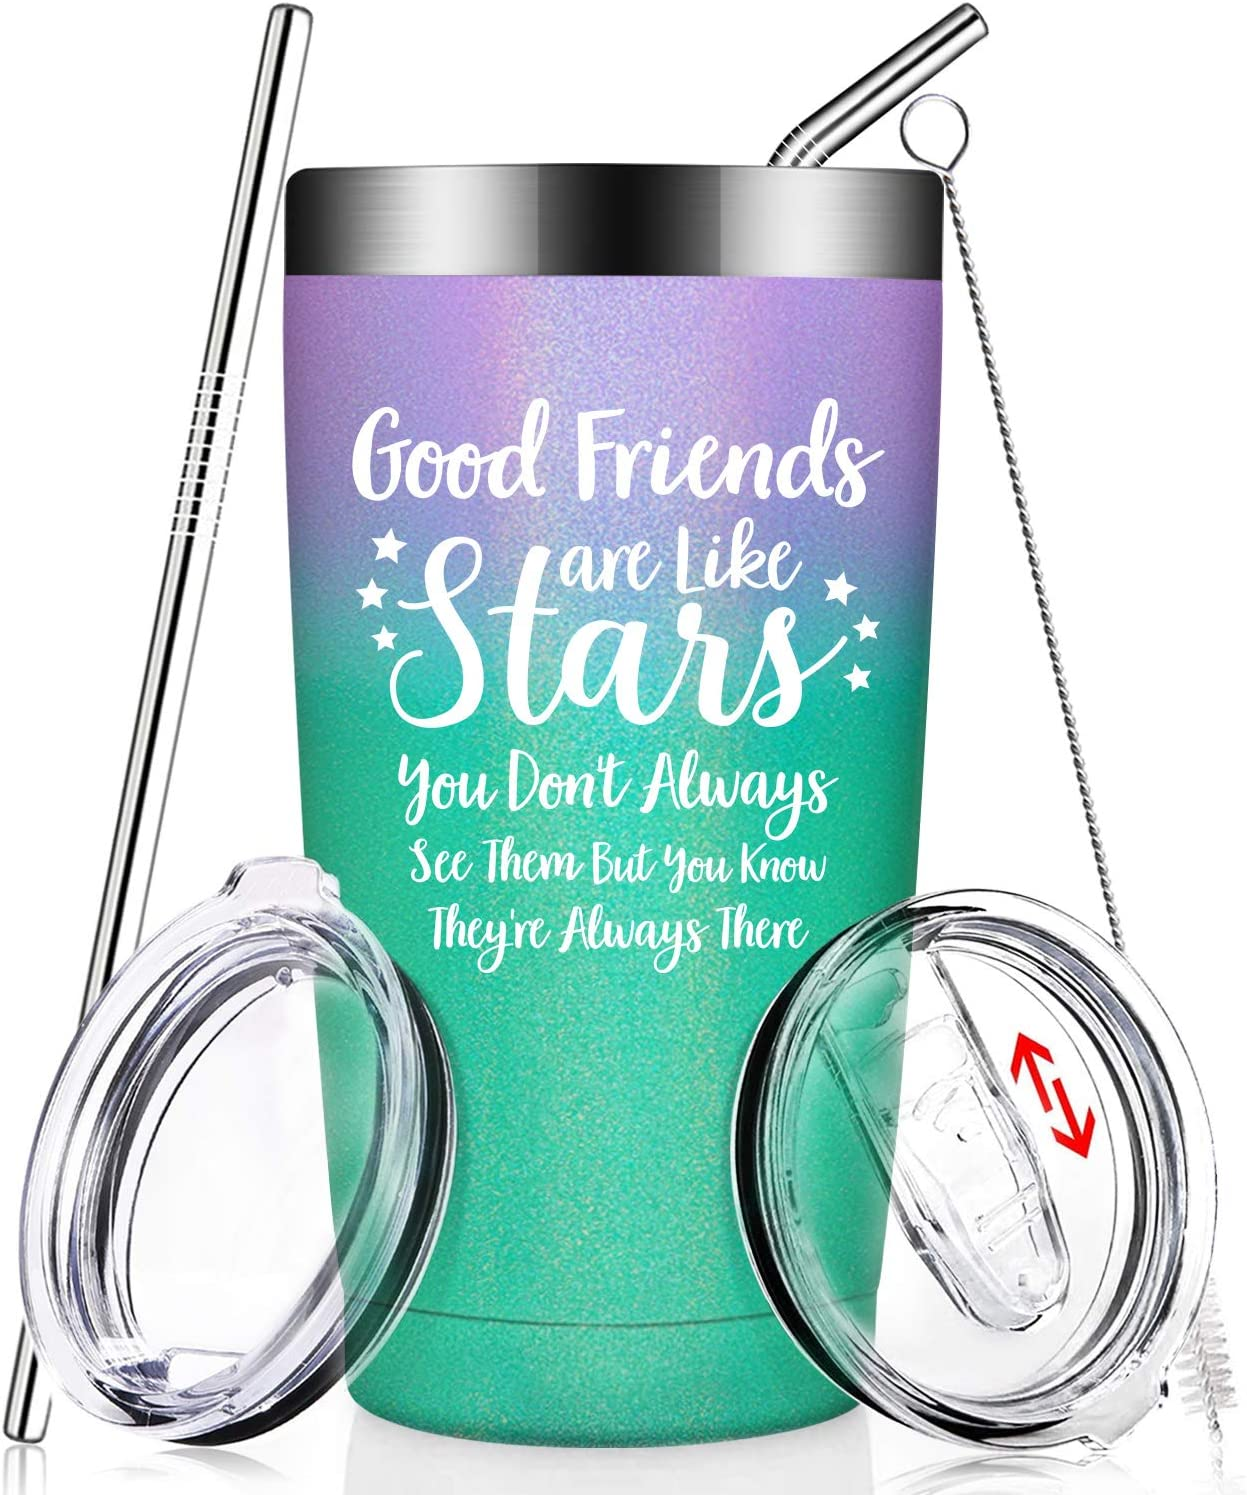 Amazon Com Good Friends Are Like Stars Funny Best Friend Birthday Gifts Christmas Friendship Present Idea For Women Men Sister Coworker Roommate Bff Female Lady Her Insulated Wine Tumbler